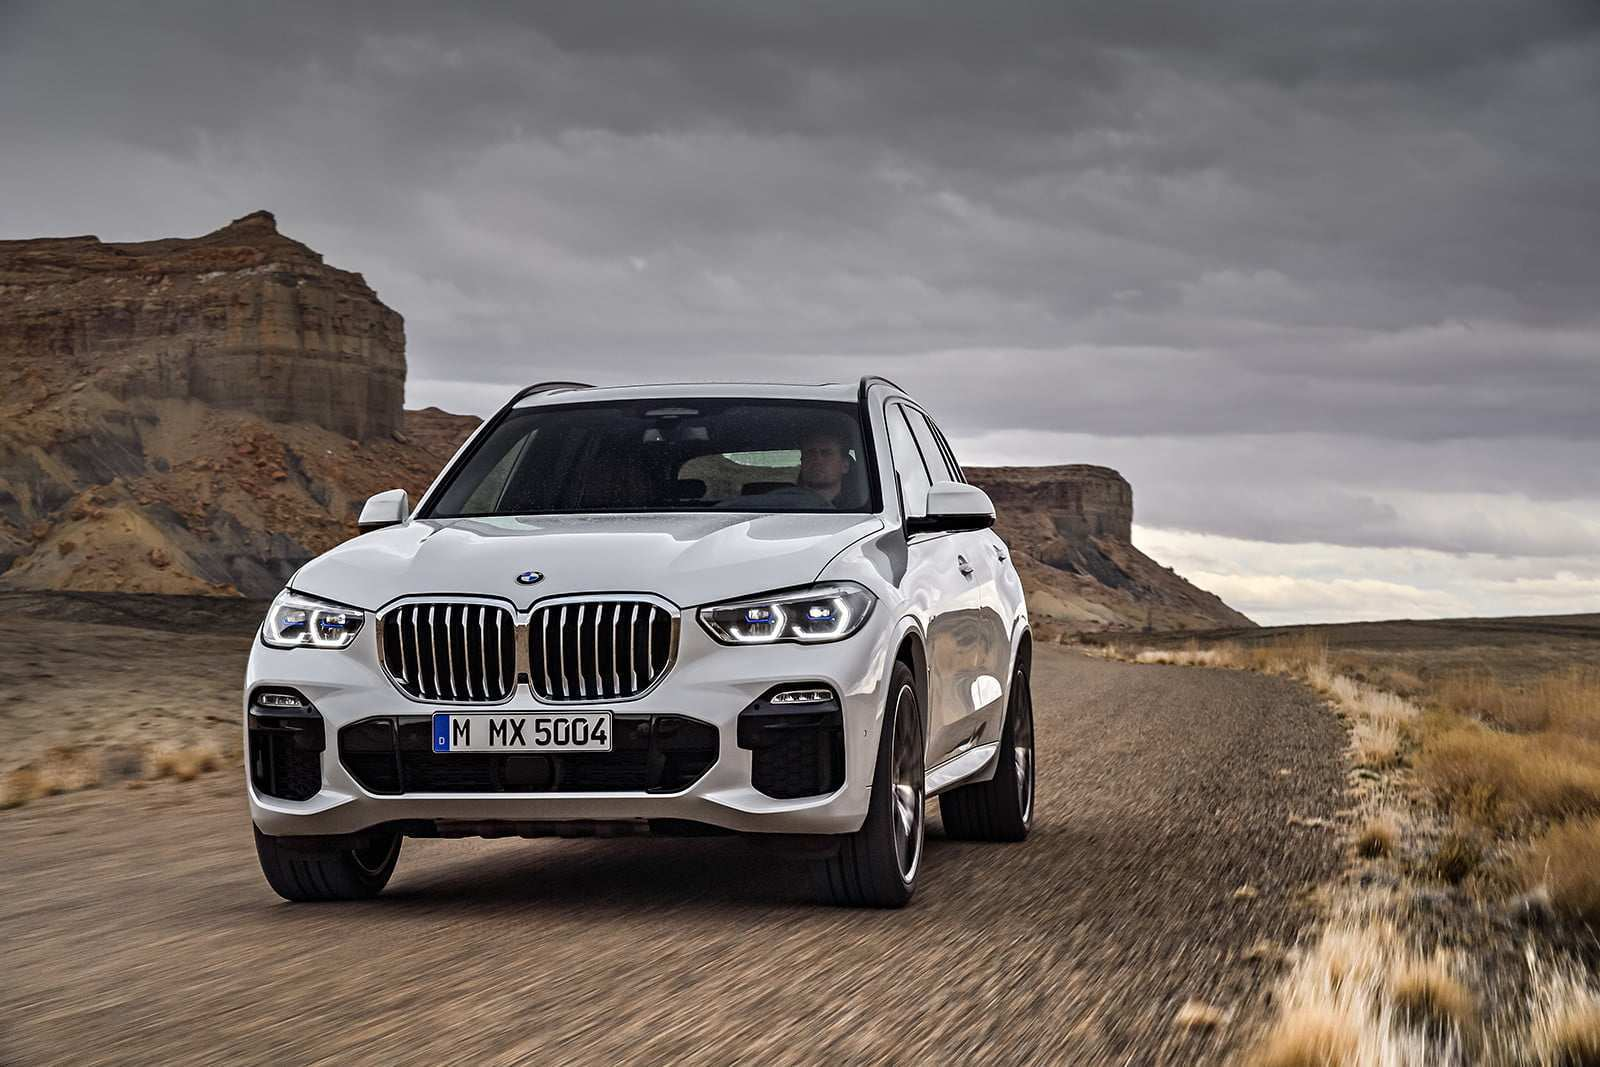 24 Gallery of When Is The Bmw X5 2019 Release Date Engine History with When Is The Bmw X5 2019 Release Date Engine